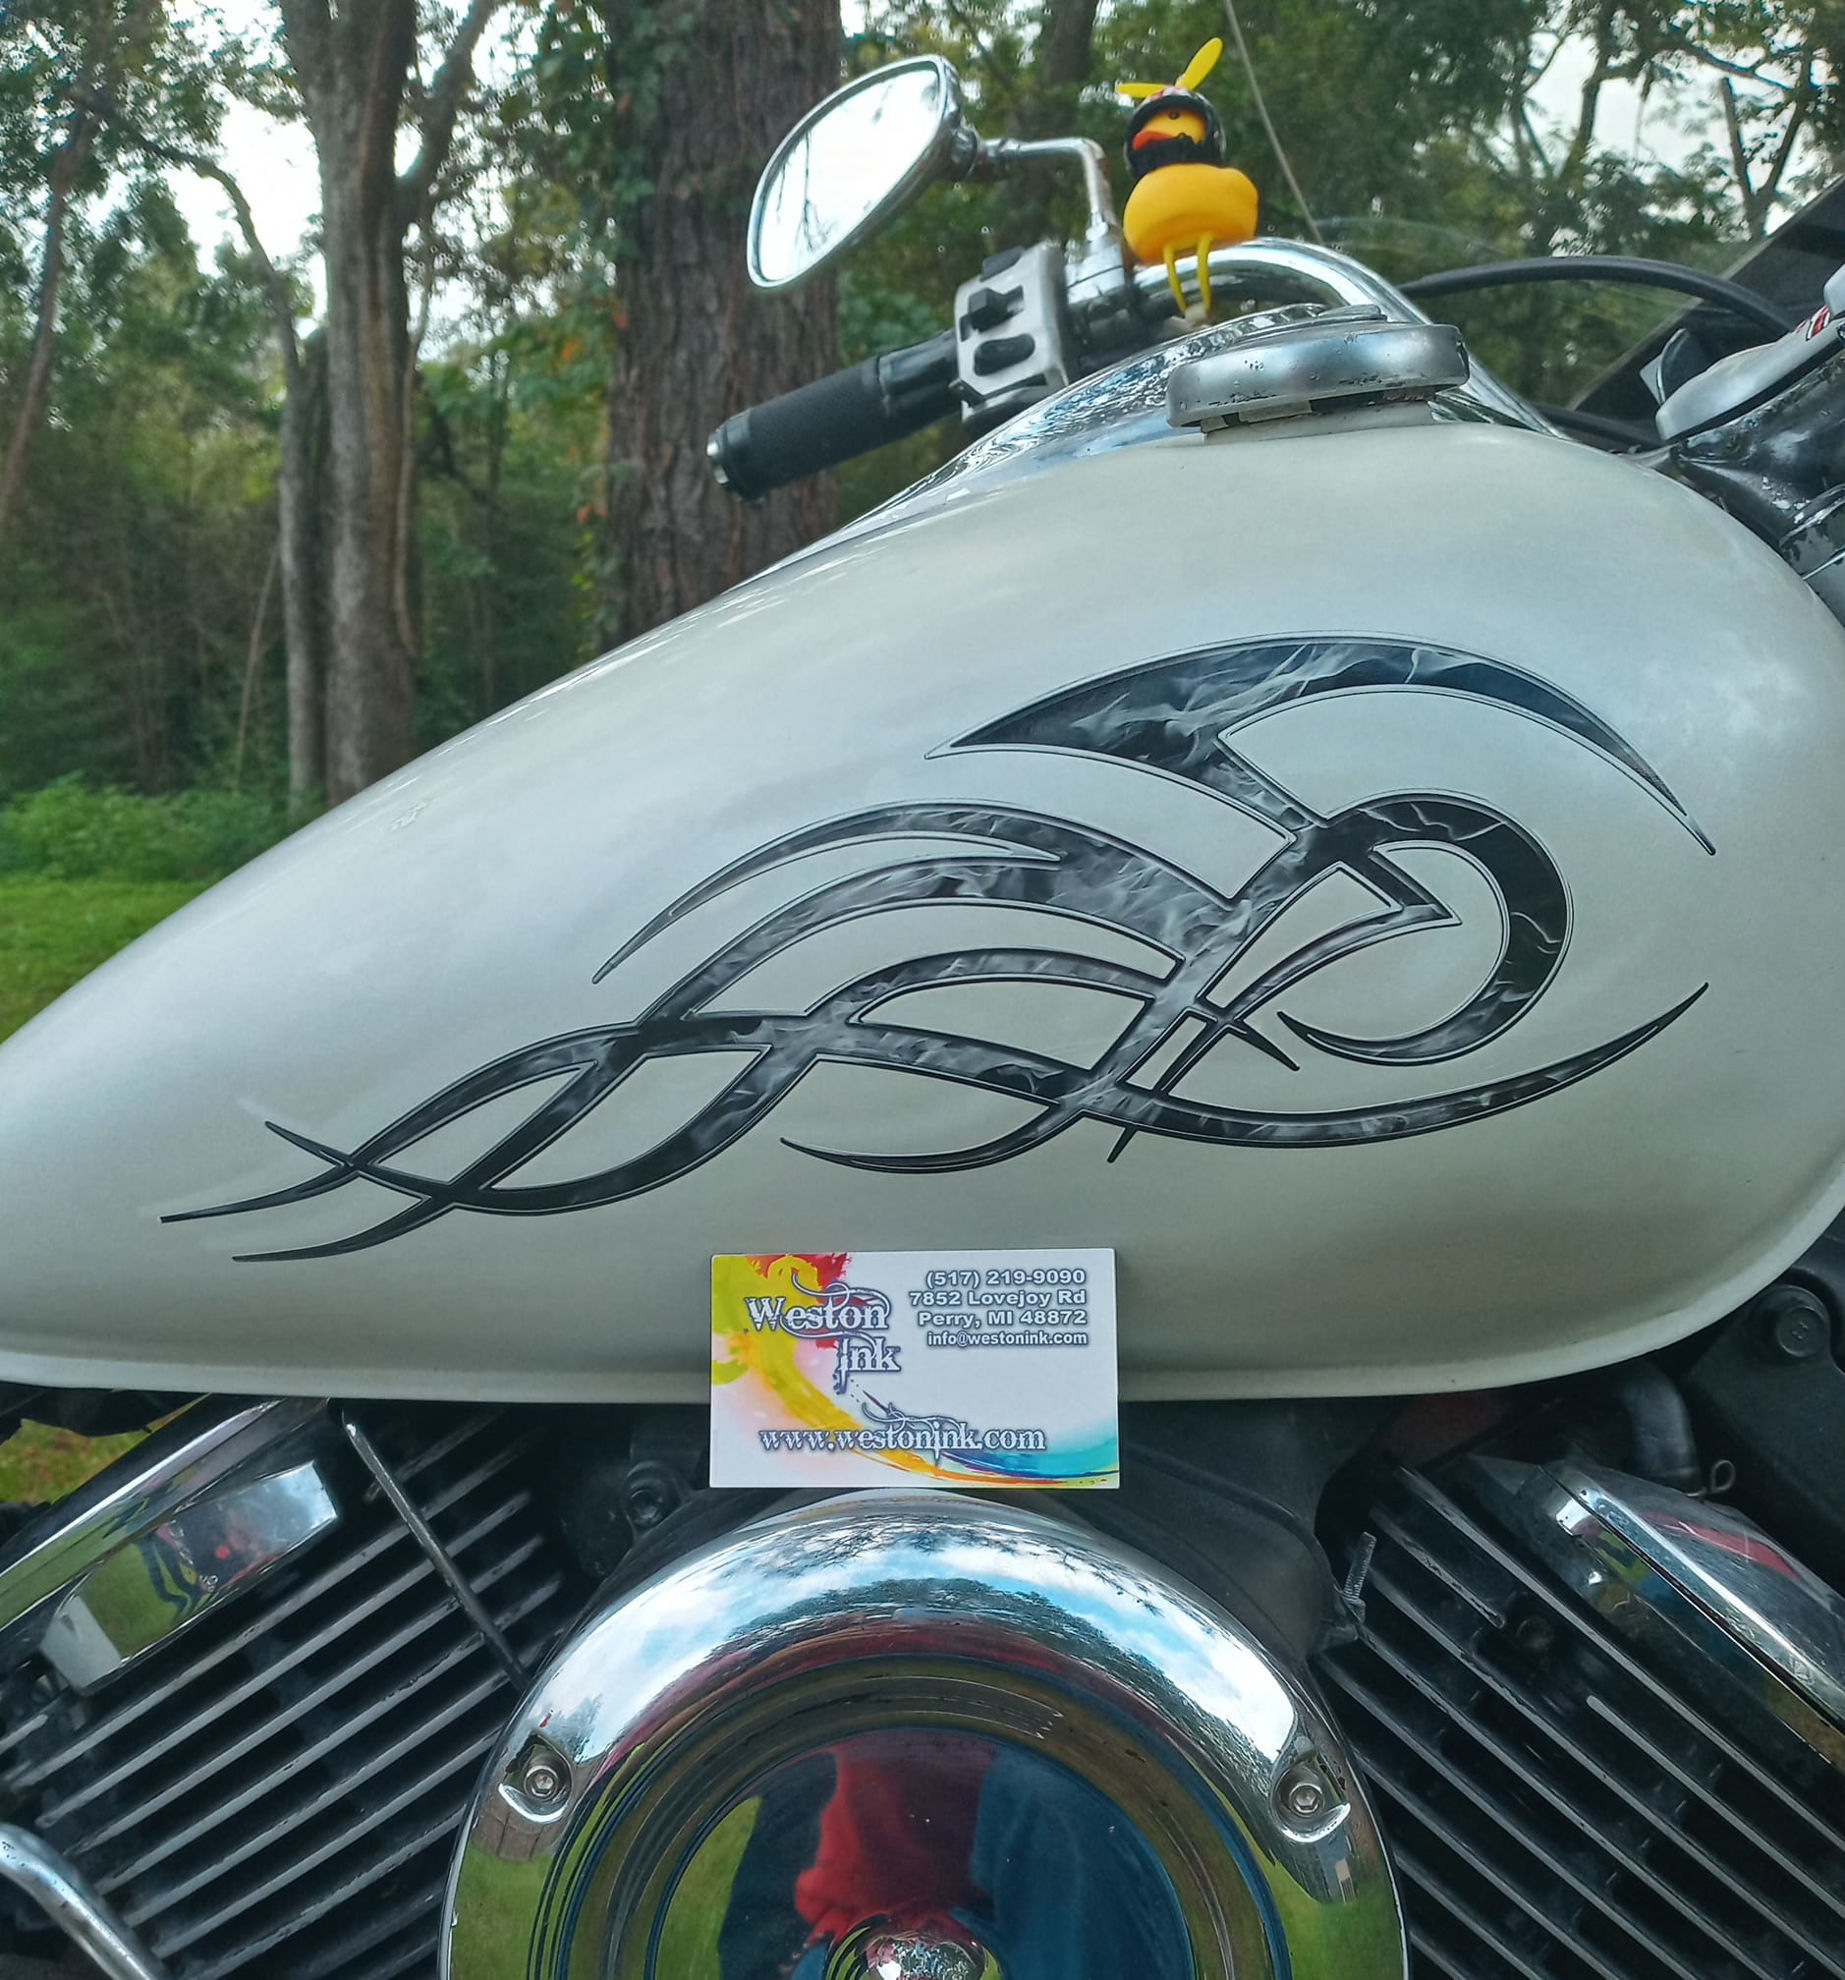 Tribal Flame Decals for Motorcycle Tanks, Cars and Trucks in Gray Inferno Flames on White Motorcycle Tank